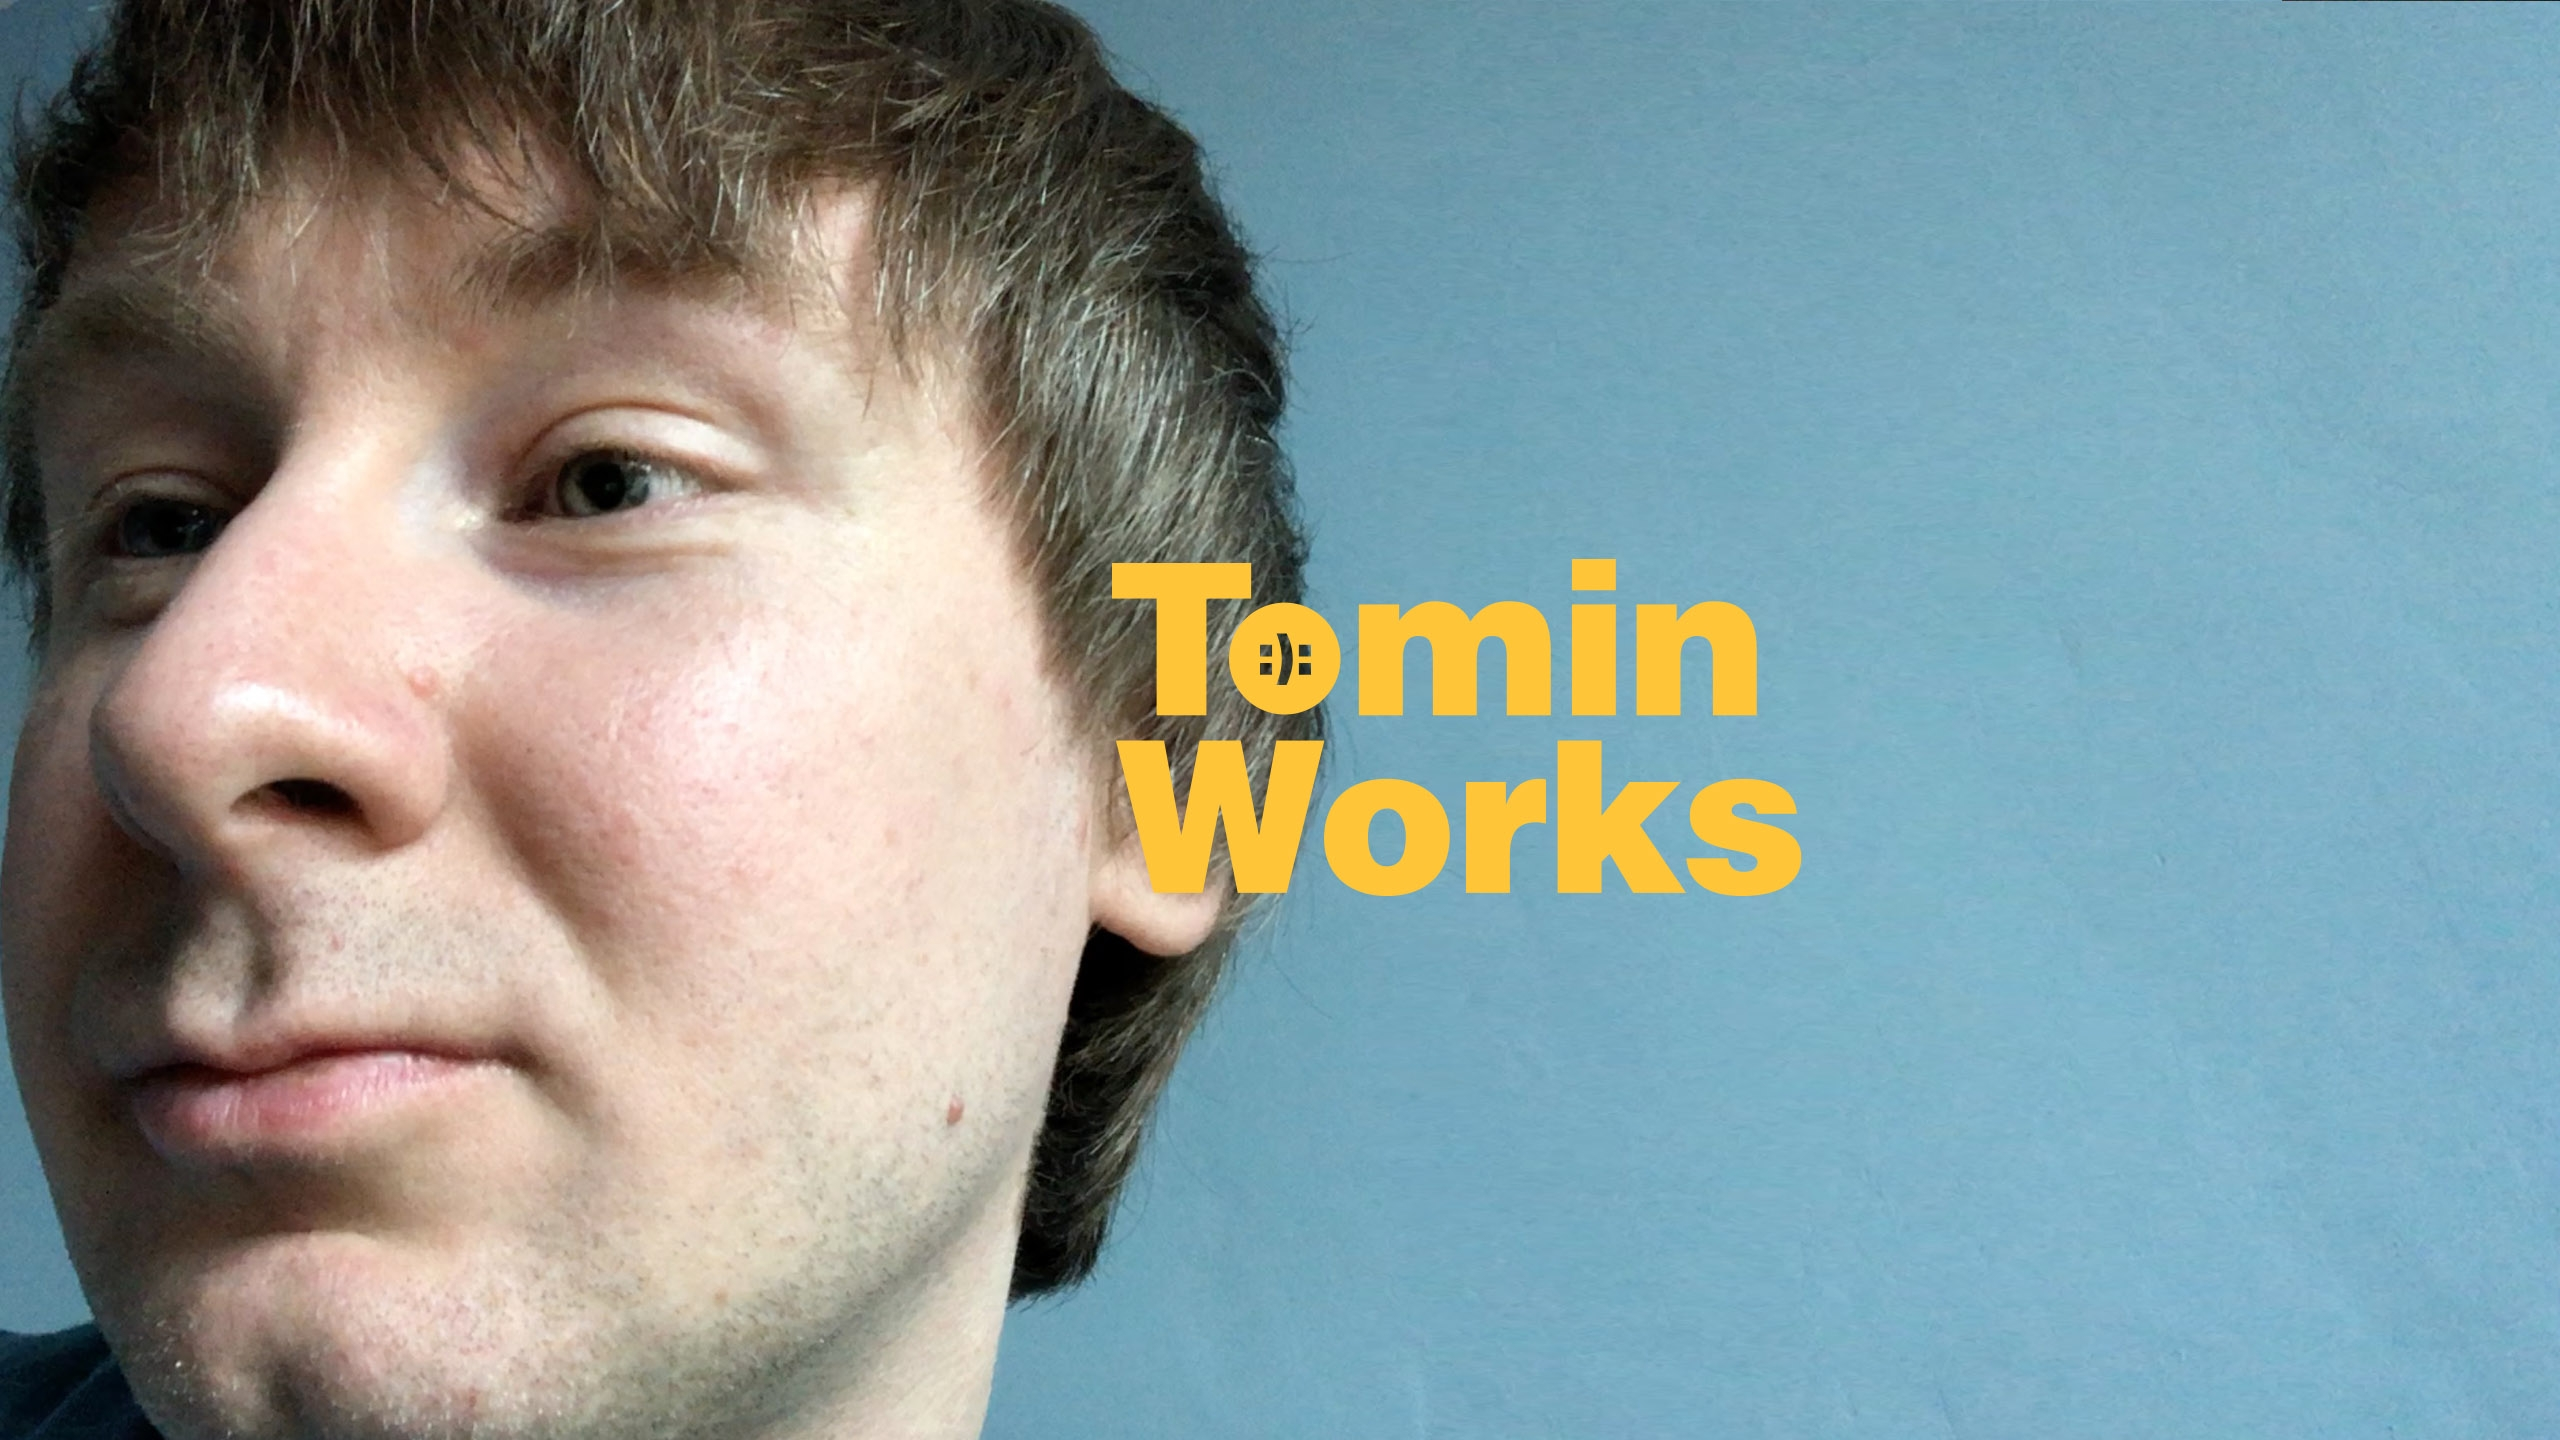 Vladimir Tomin (@tomin_works) Cover Image